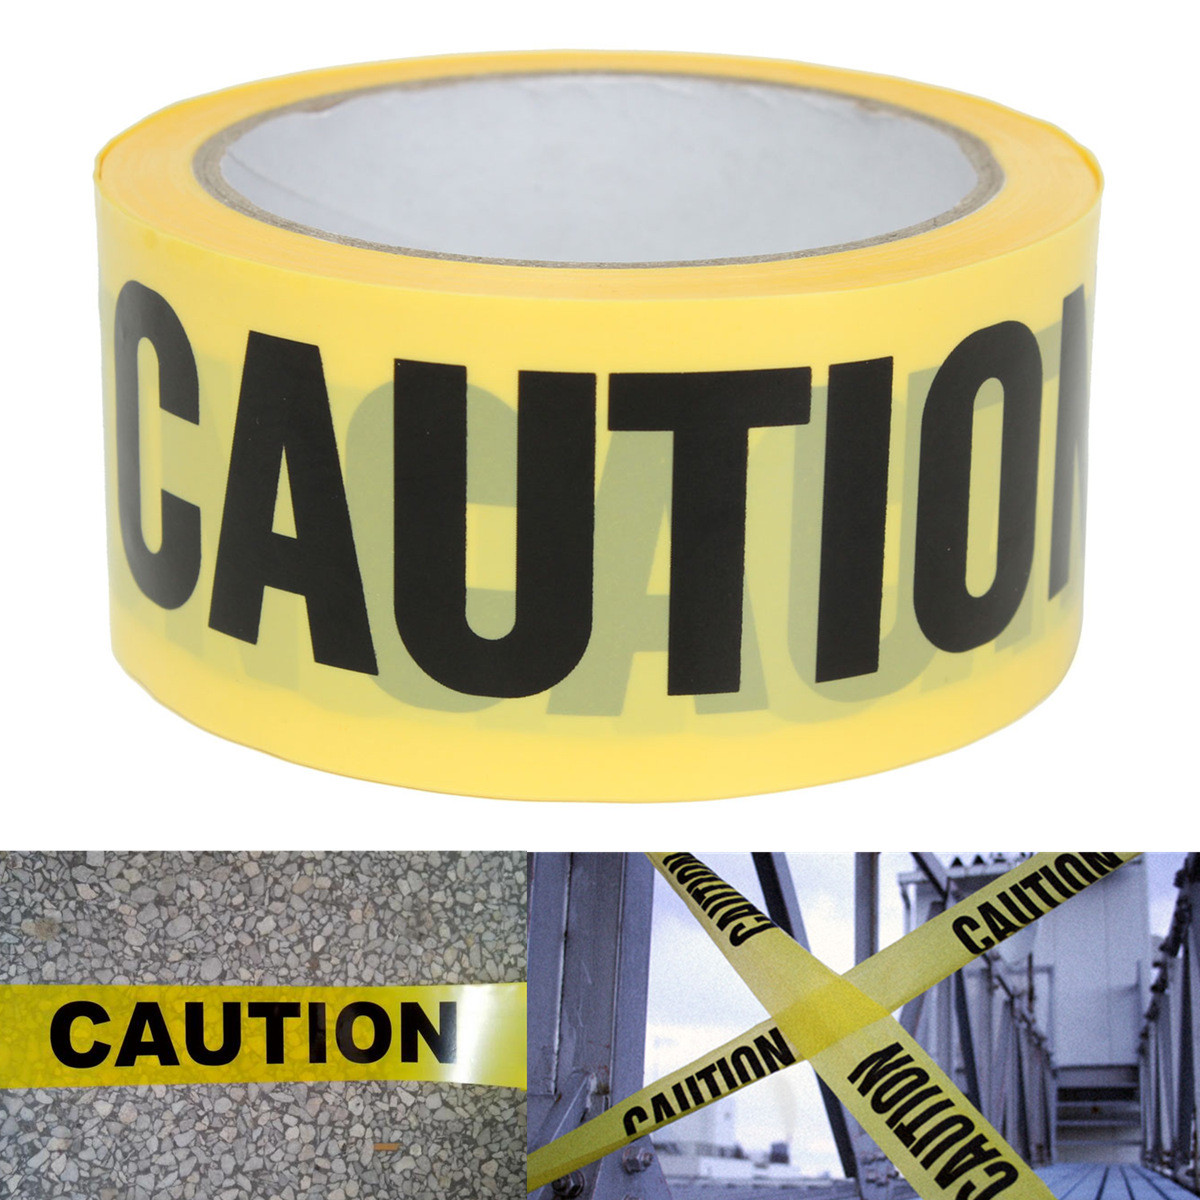 Roll Yellow Caution Warning Adhesive Tape Sticker For Safety Barrier For Police Barricade Contractors Maintenance 50mx5cm